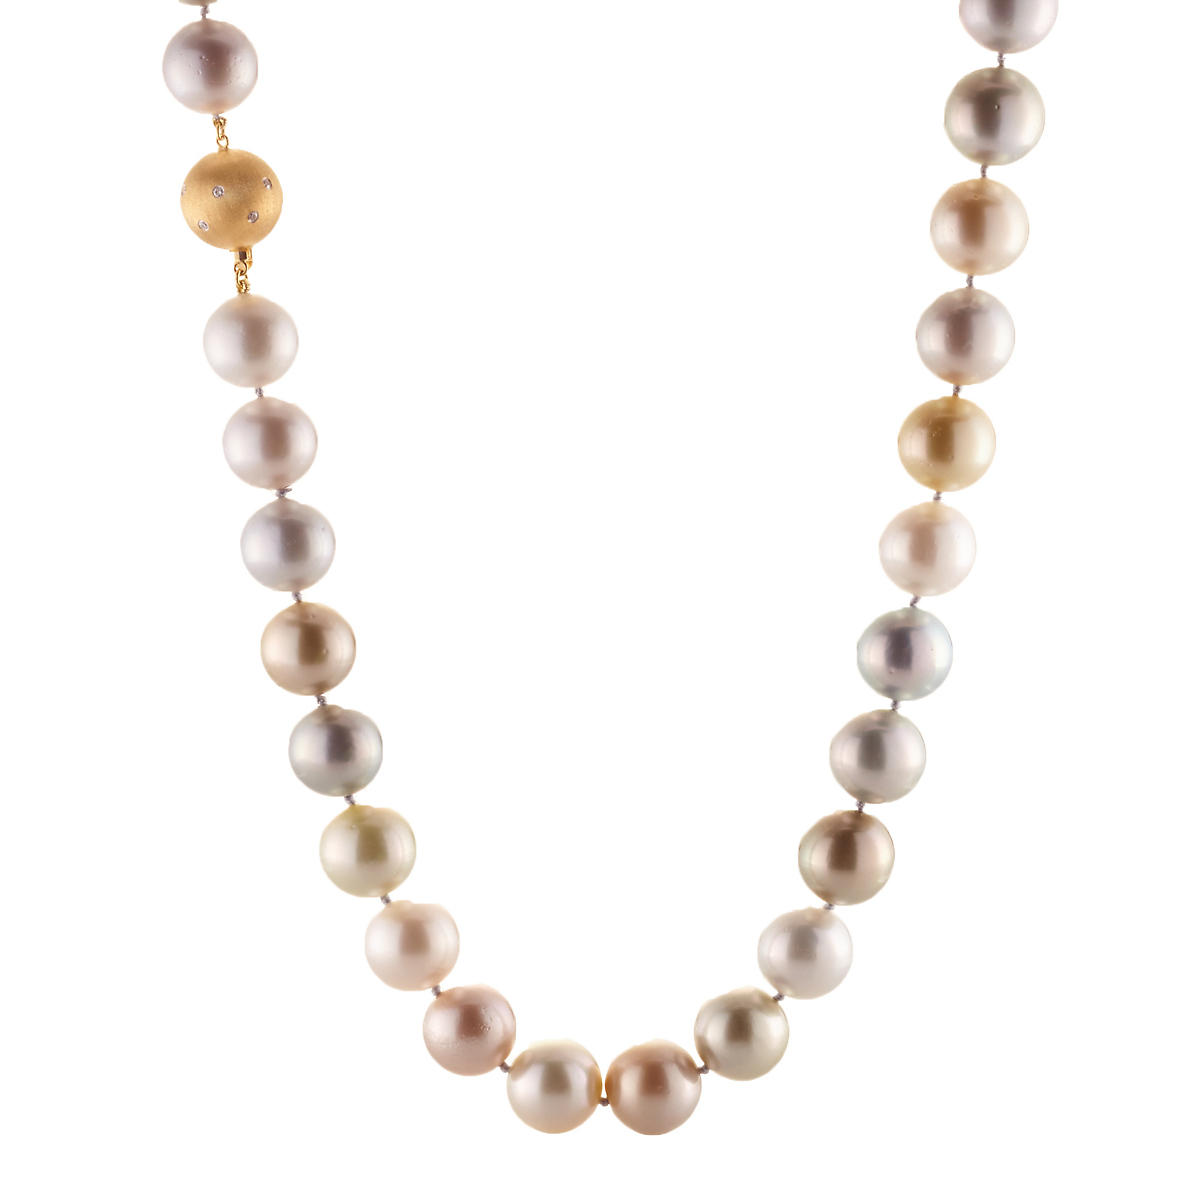 Gump's Pastel Tahitian and South Sea Pearl Necklace